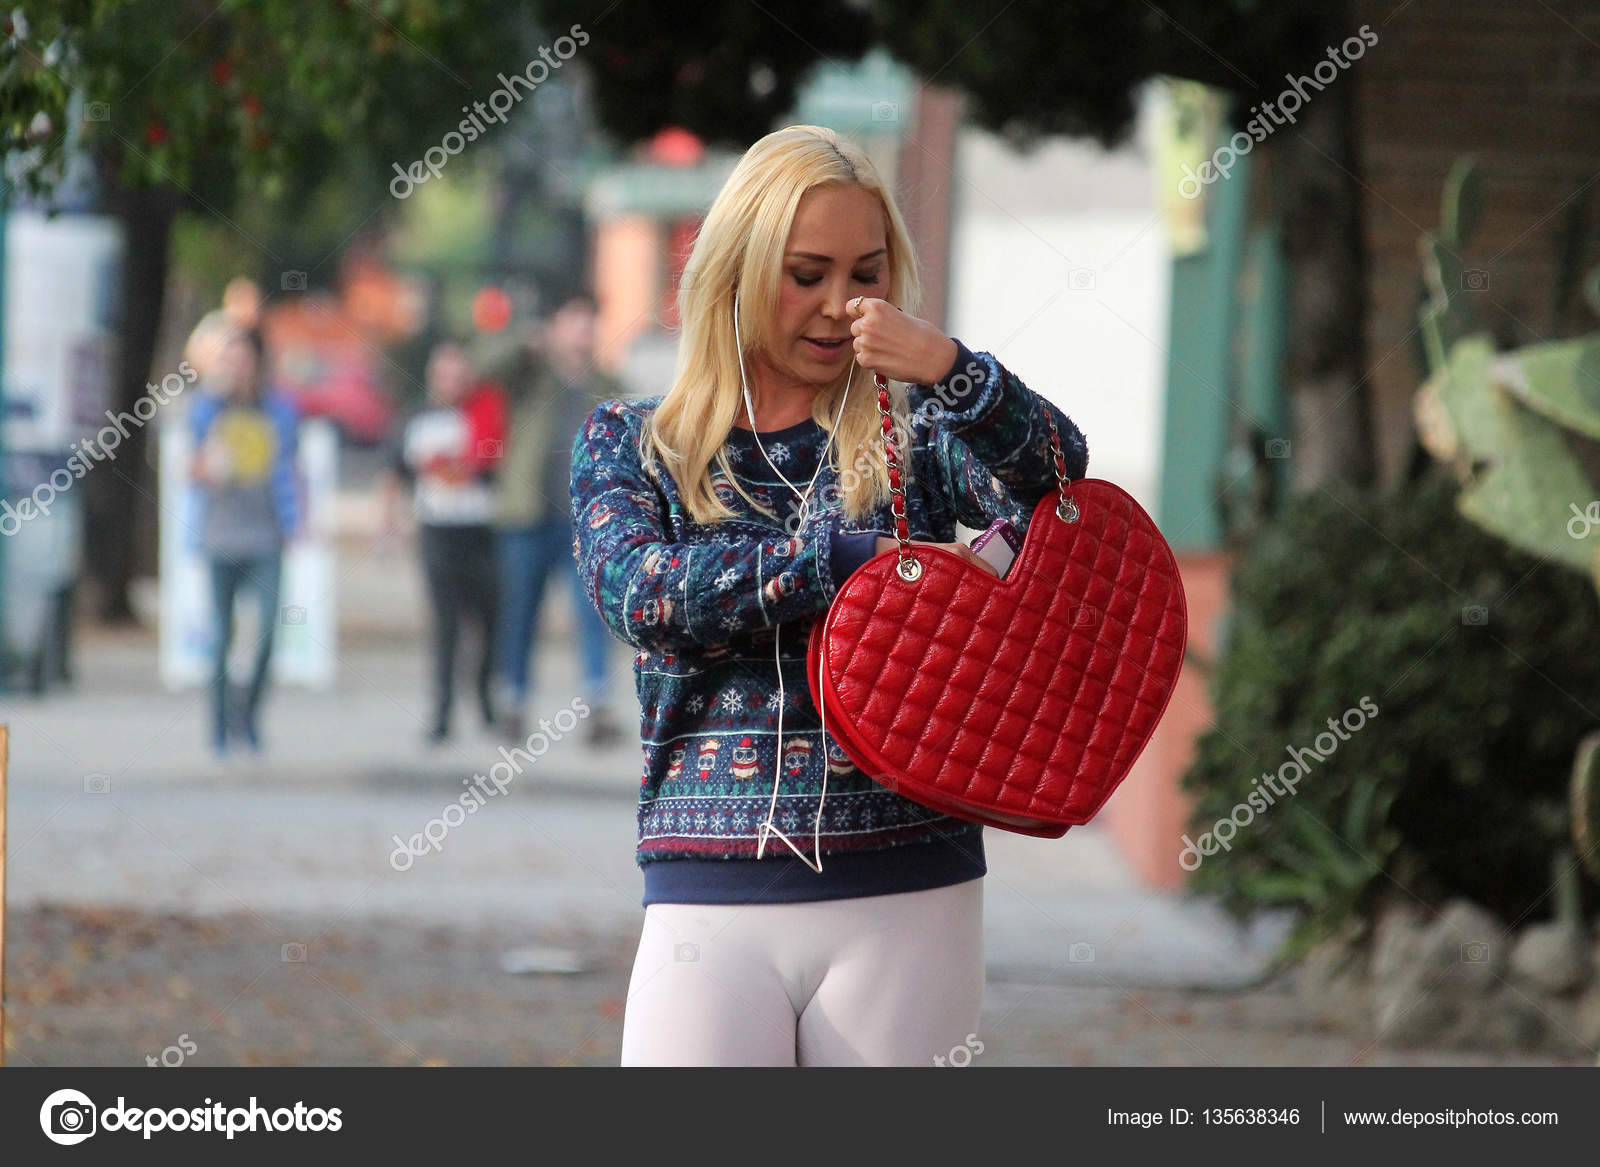 958efddba3a6af Actress Mary Carey Celebrity Rehab Star spotted out shopping while wearing  tight leggings and an Ugly Christmas Sweater, North Hollywood, ...